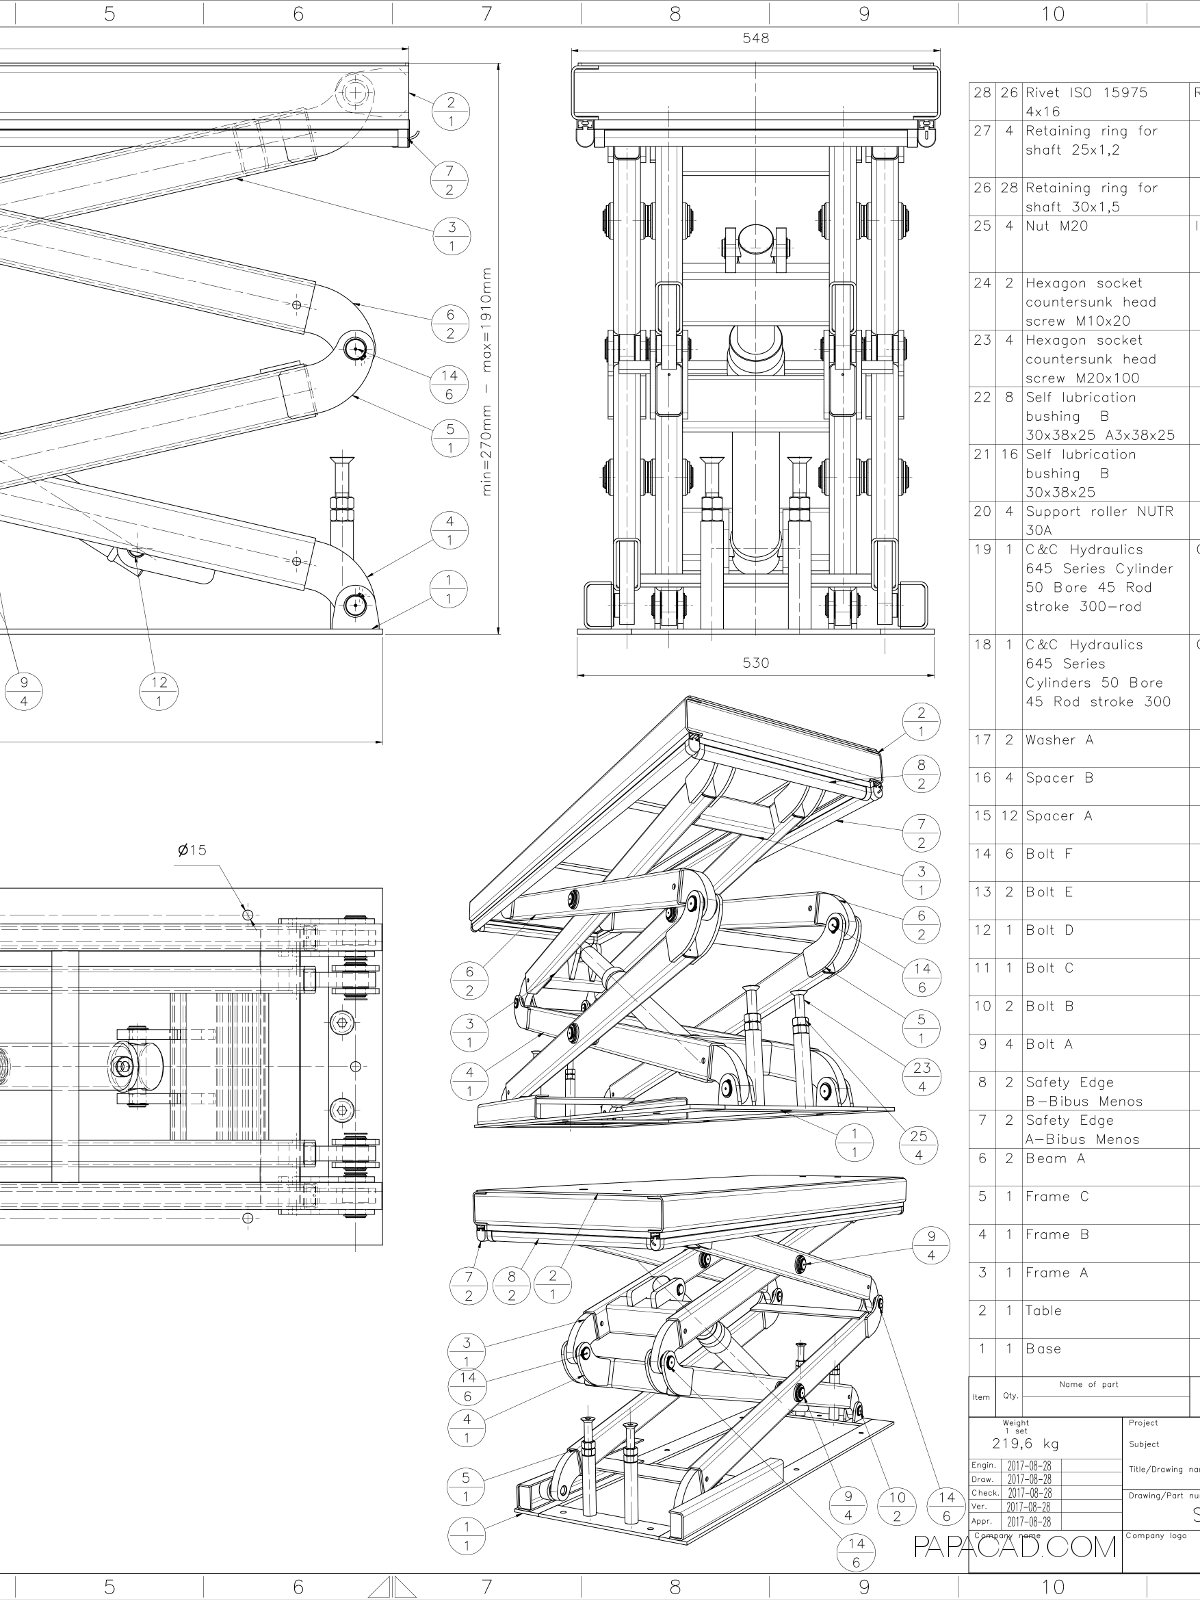 Diy car scissor lift plans do it your self Car lift plans